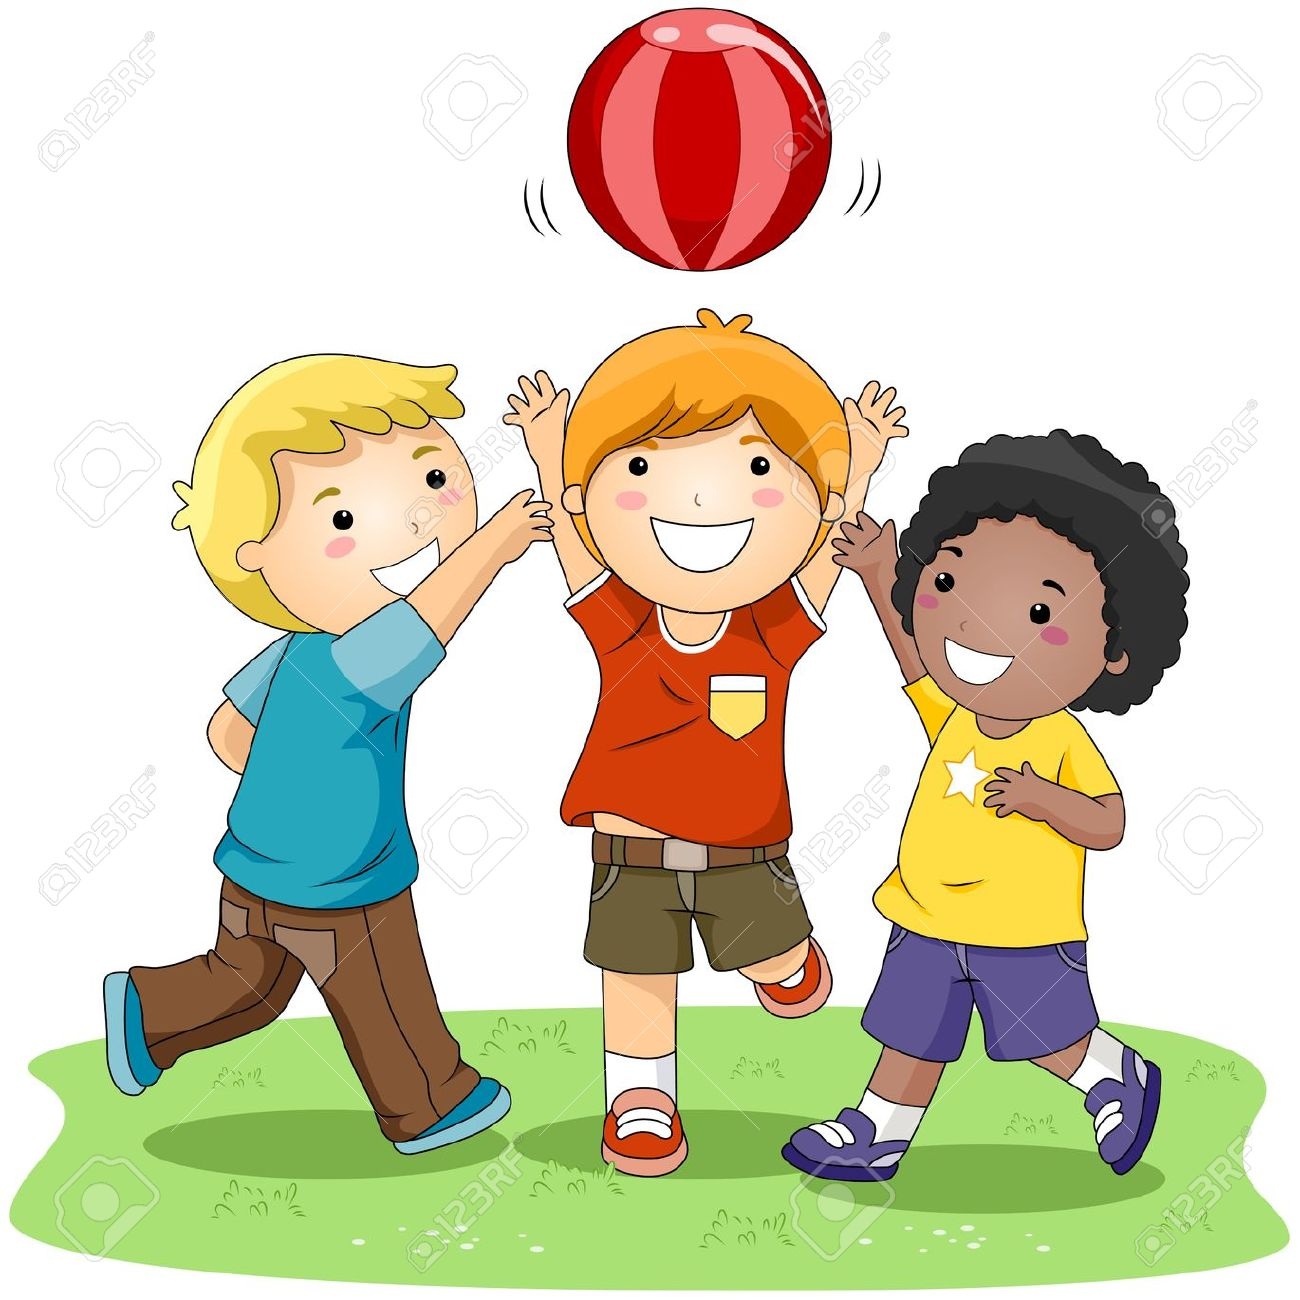 Kids Playing Together Clipart.